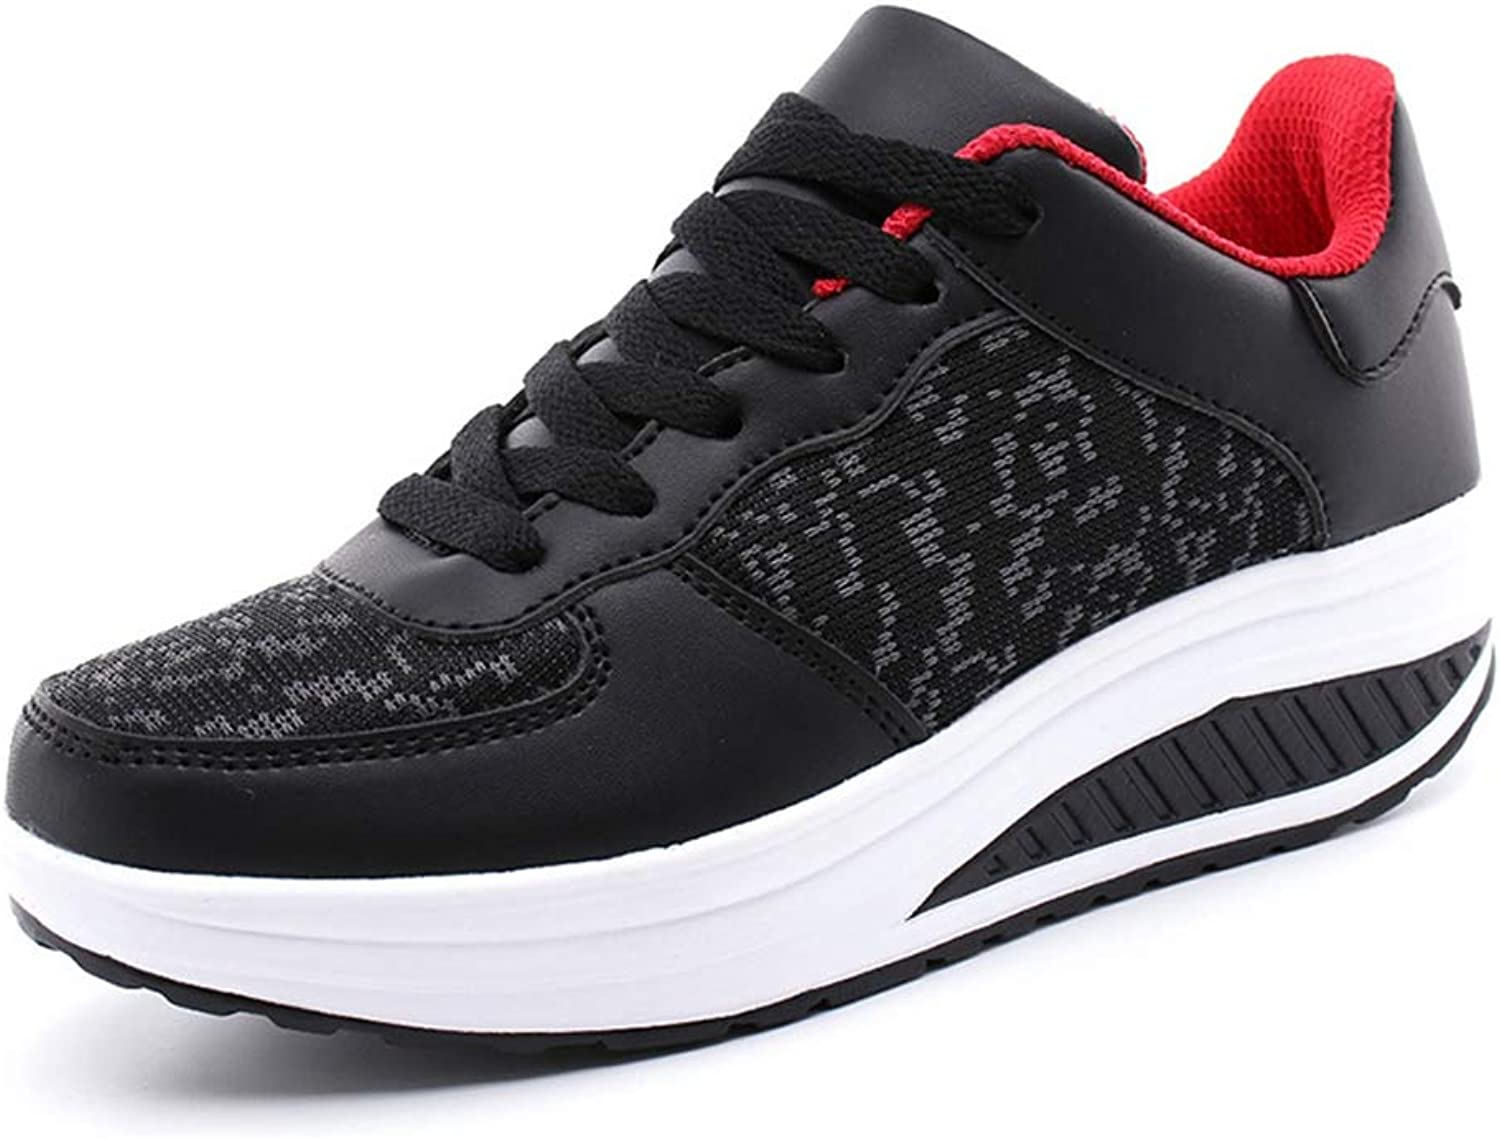 Hoxekle PU and Mesh Casual Swing Breathable Wedges Platform shoes Women Ladies Trainers Sneakers Lace Up Runing shoes